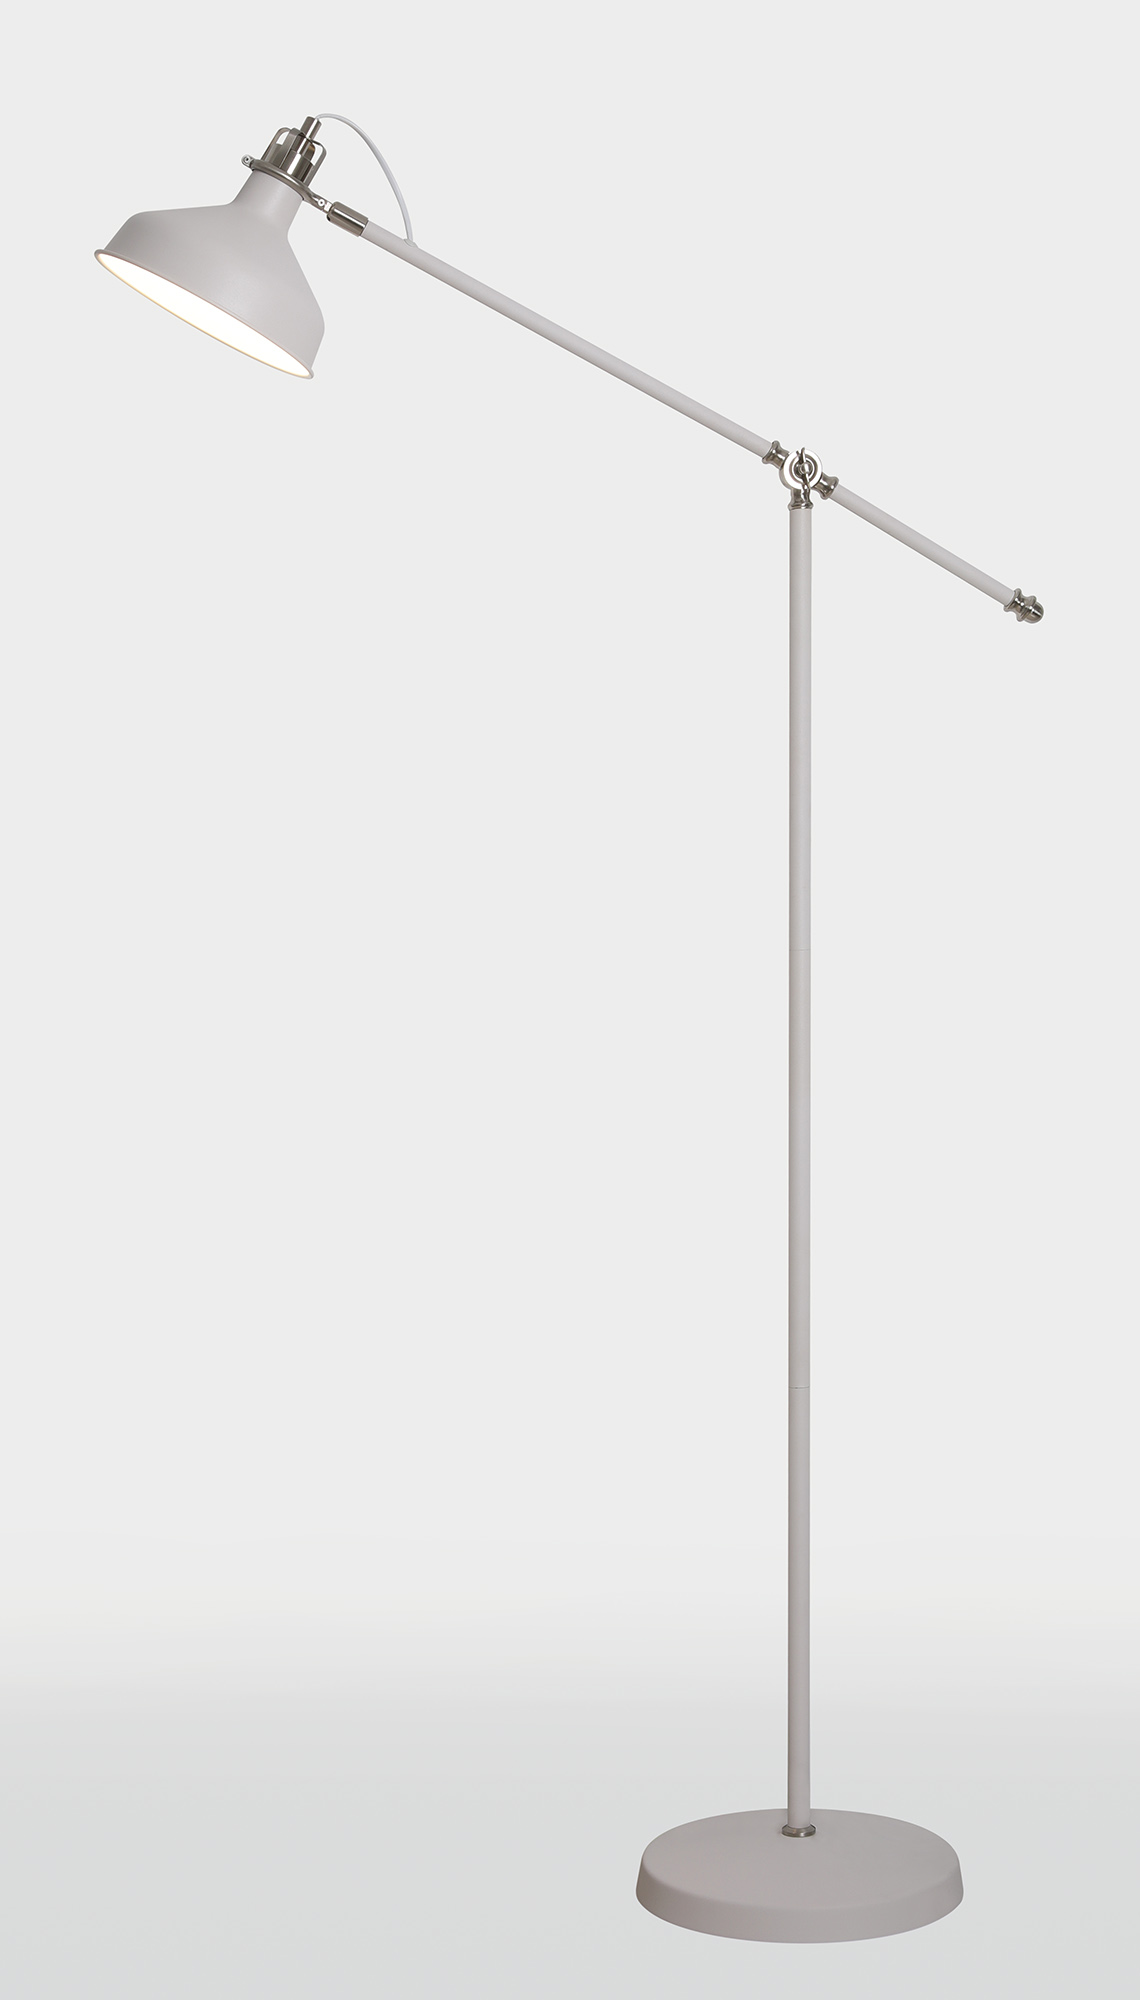 Adjustable Floor Lamp, 1 x E27